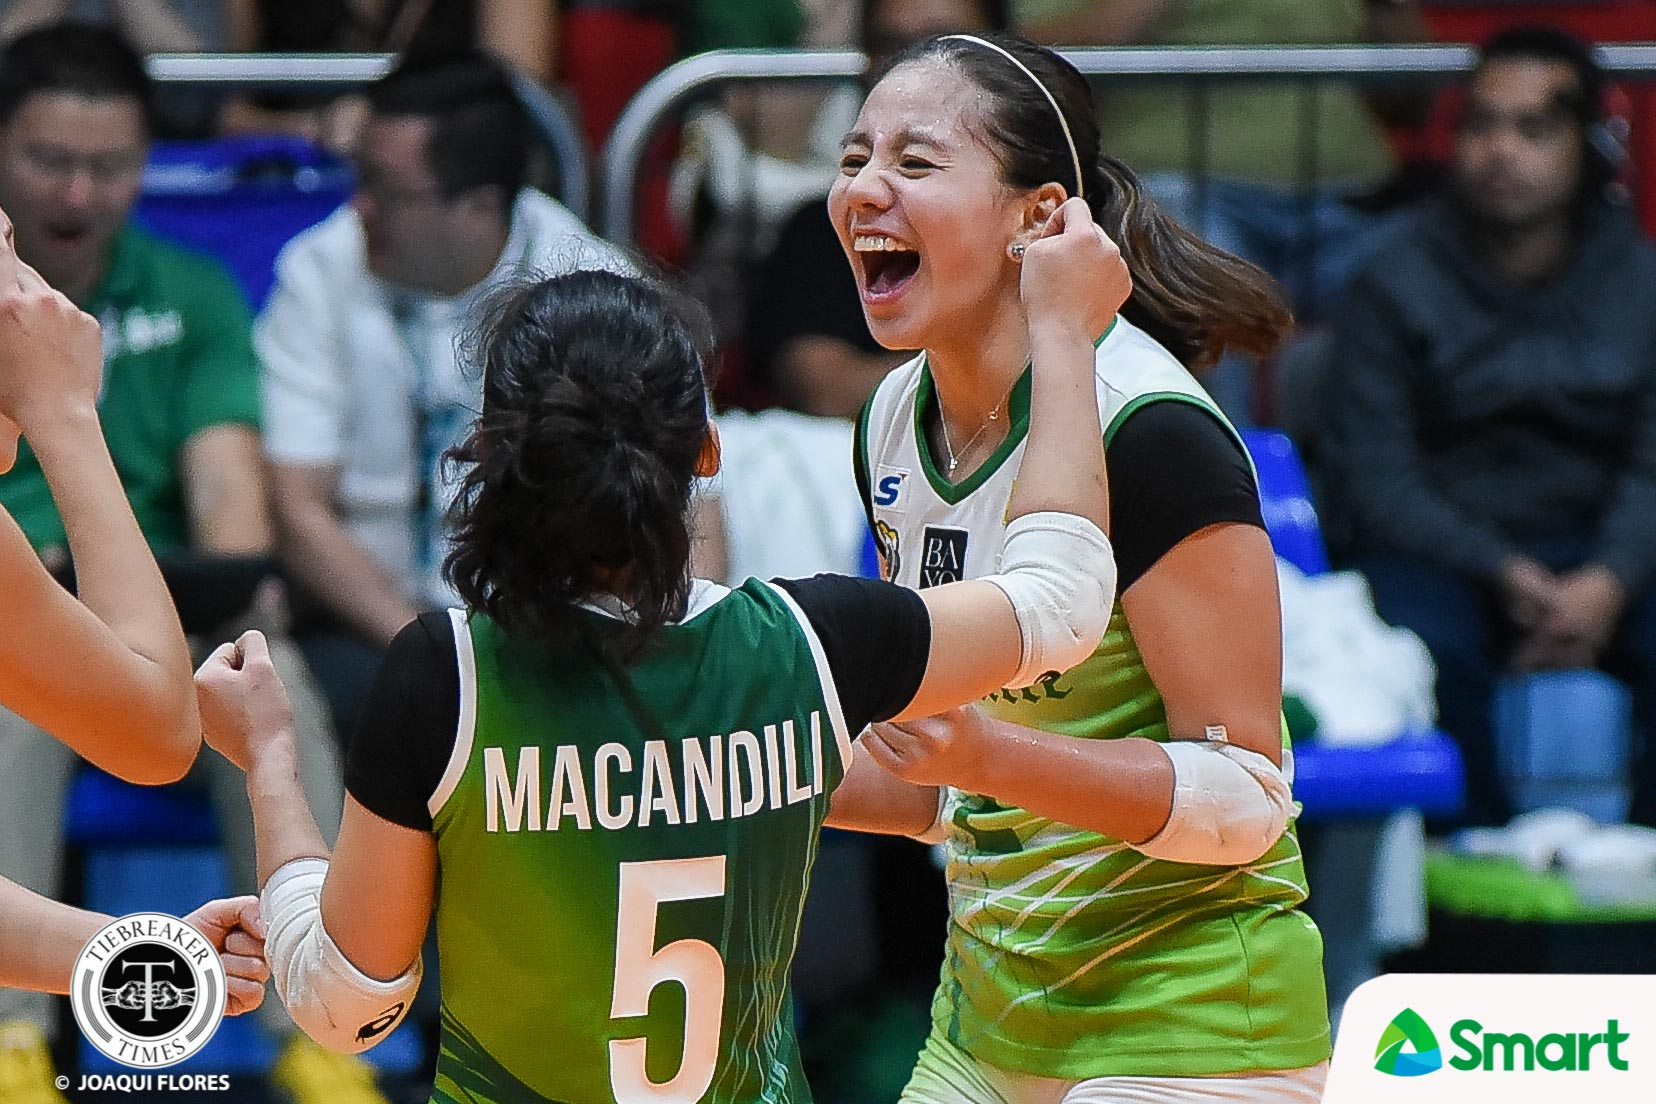 Tiebreaker Times Lady Spikers starting to find groove after another convincing win DLSU News UAAP Volleyball  UAAP Season 80 Women's Volleyball UAAP Season 80 Ramil De Jesus Kim Dy DLSU Women's Volleyball